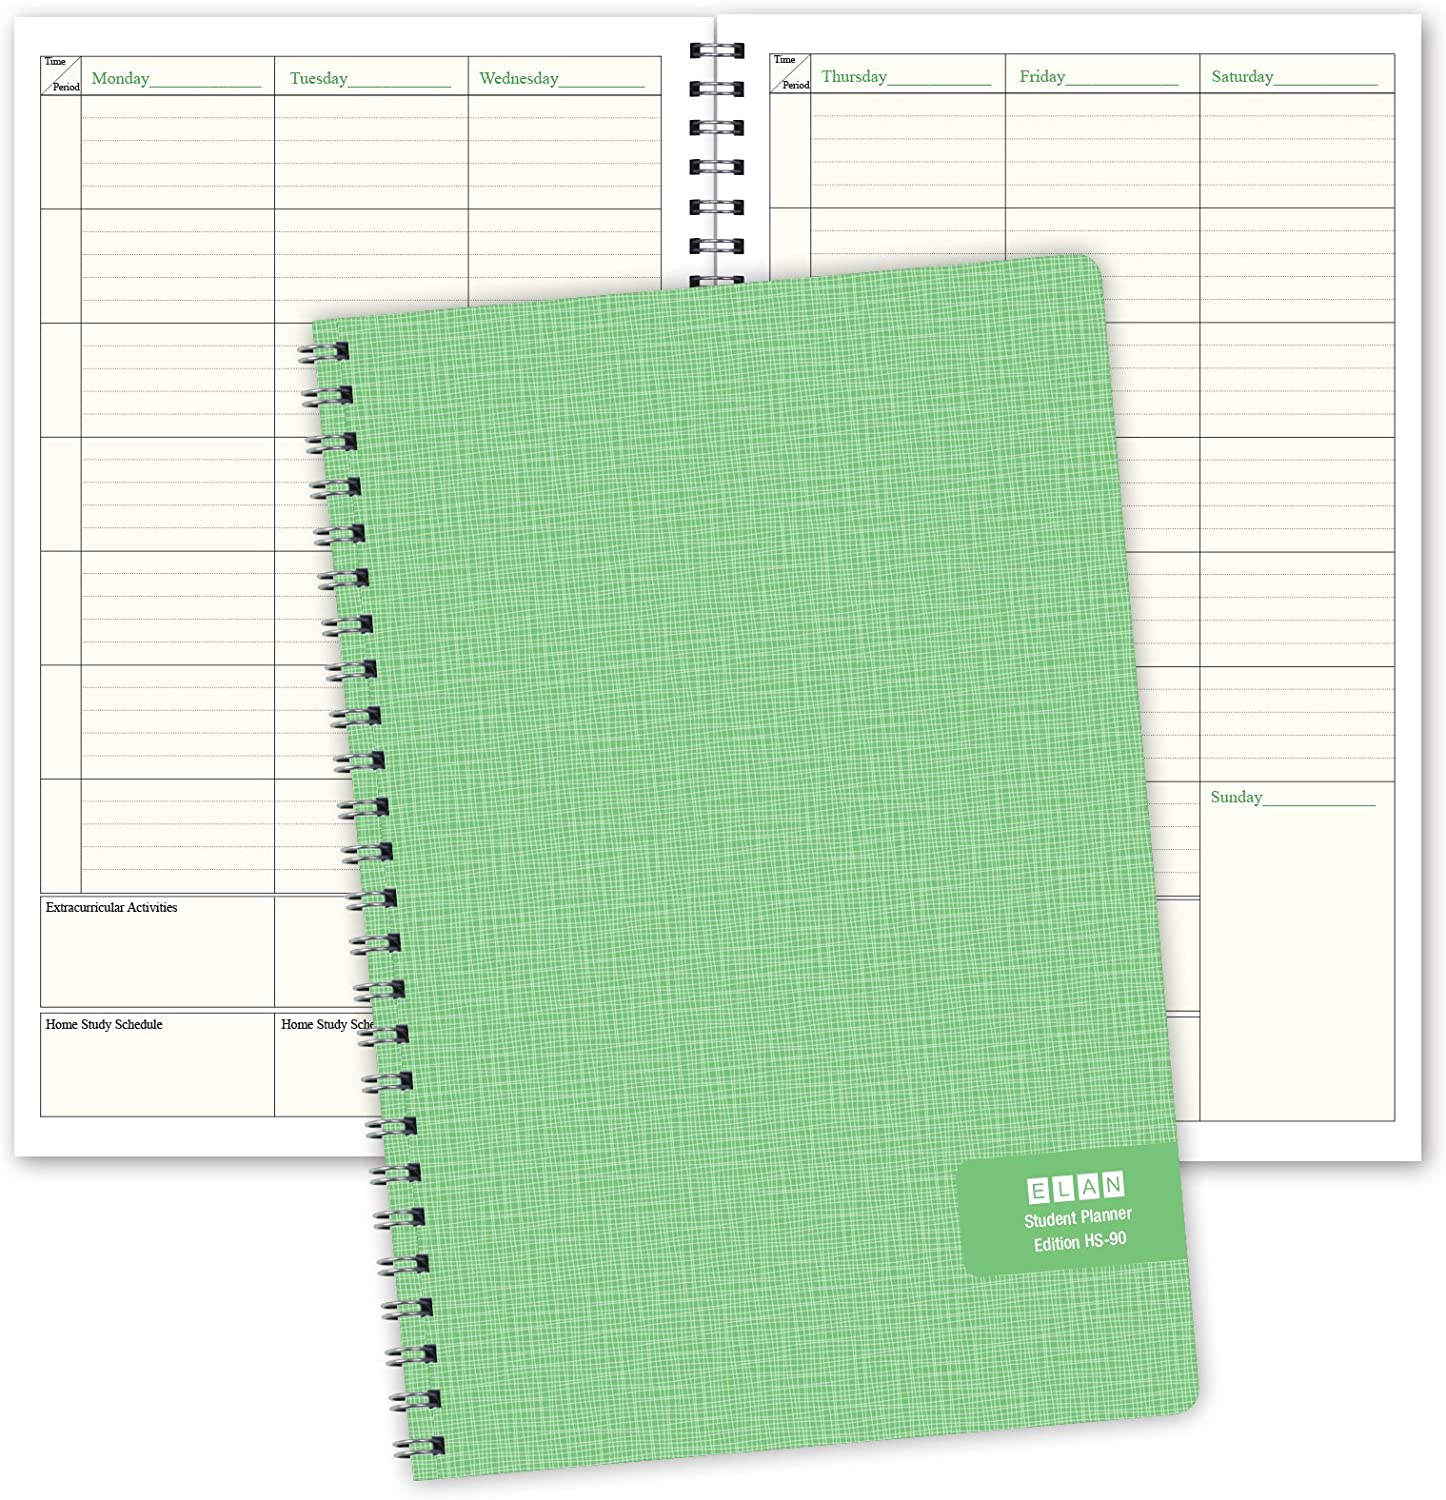 Deluxe Full-Year Student Planner for High School 40 Weeks (HS-90)